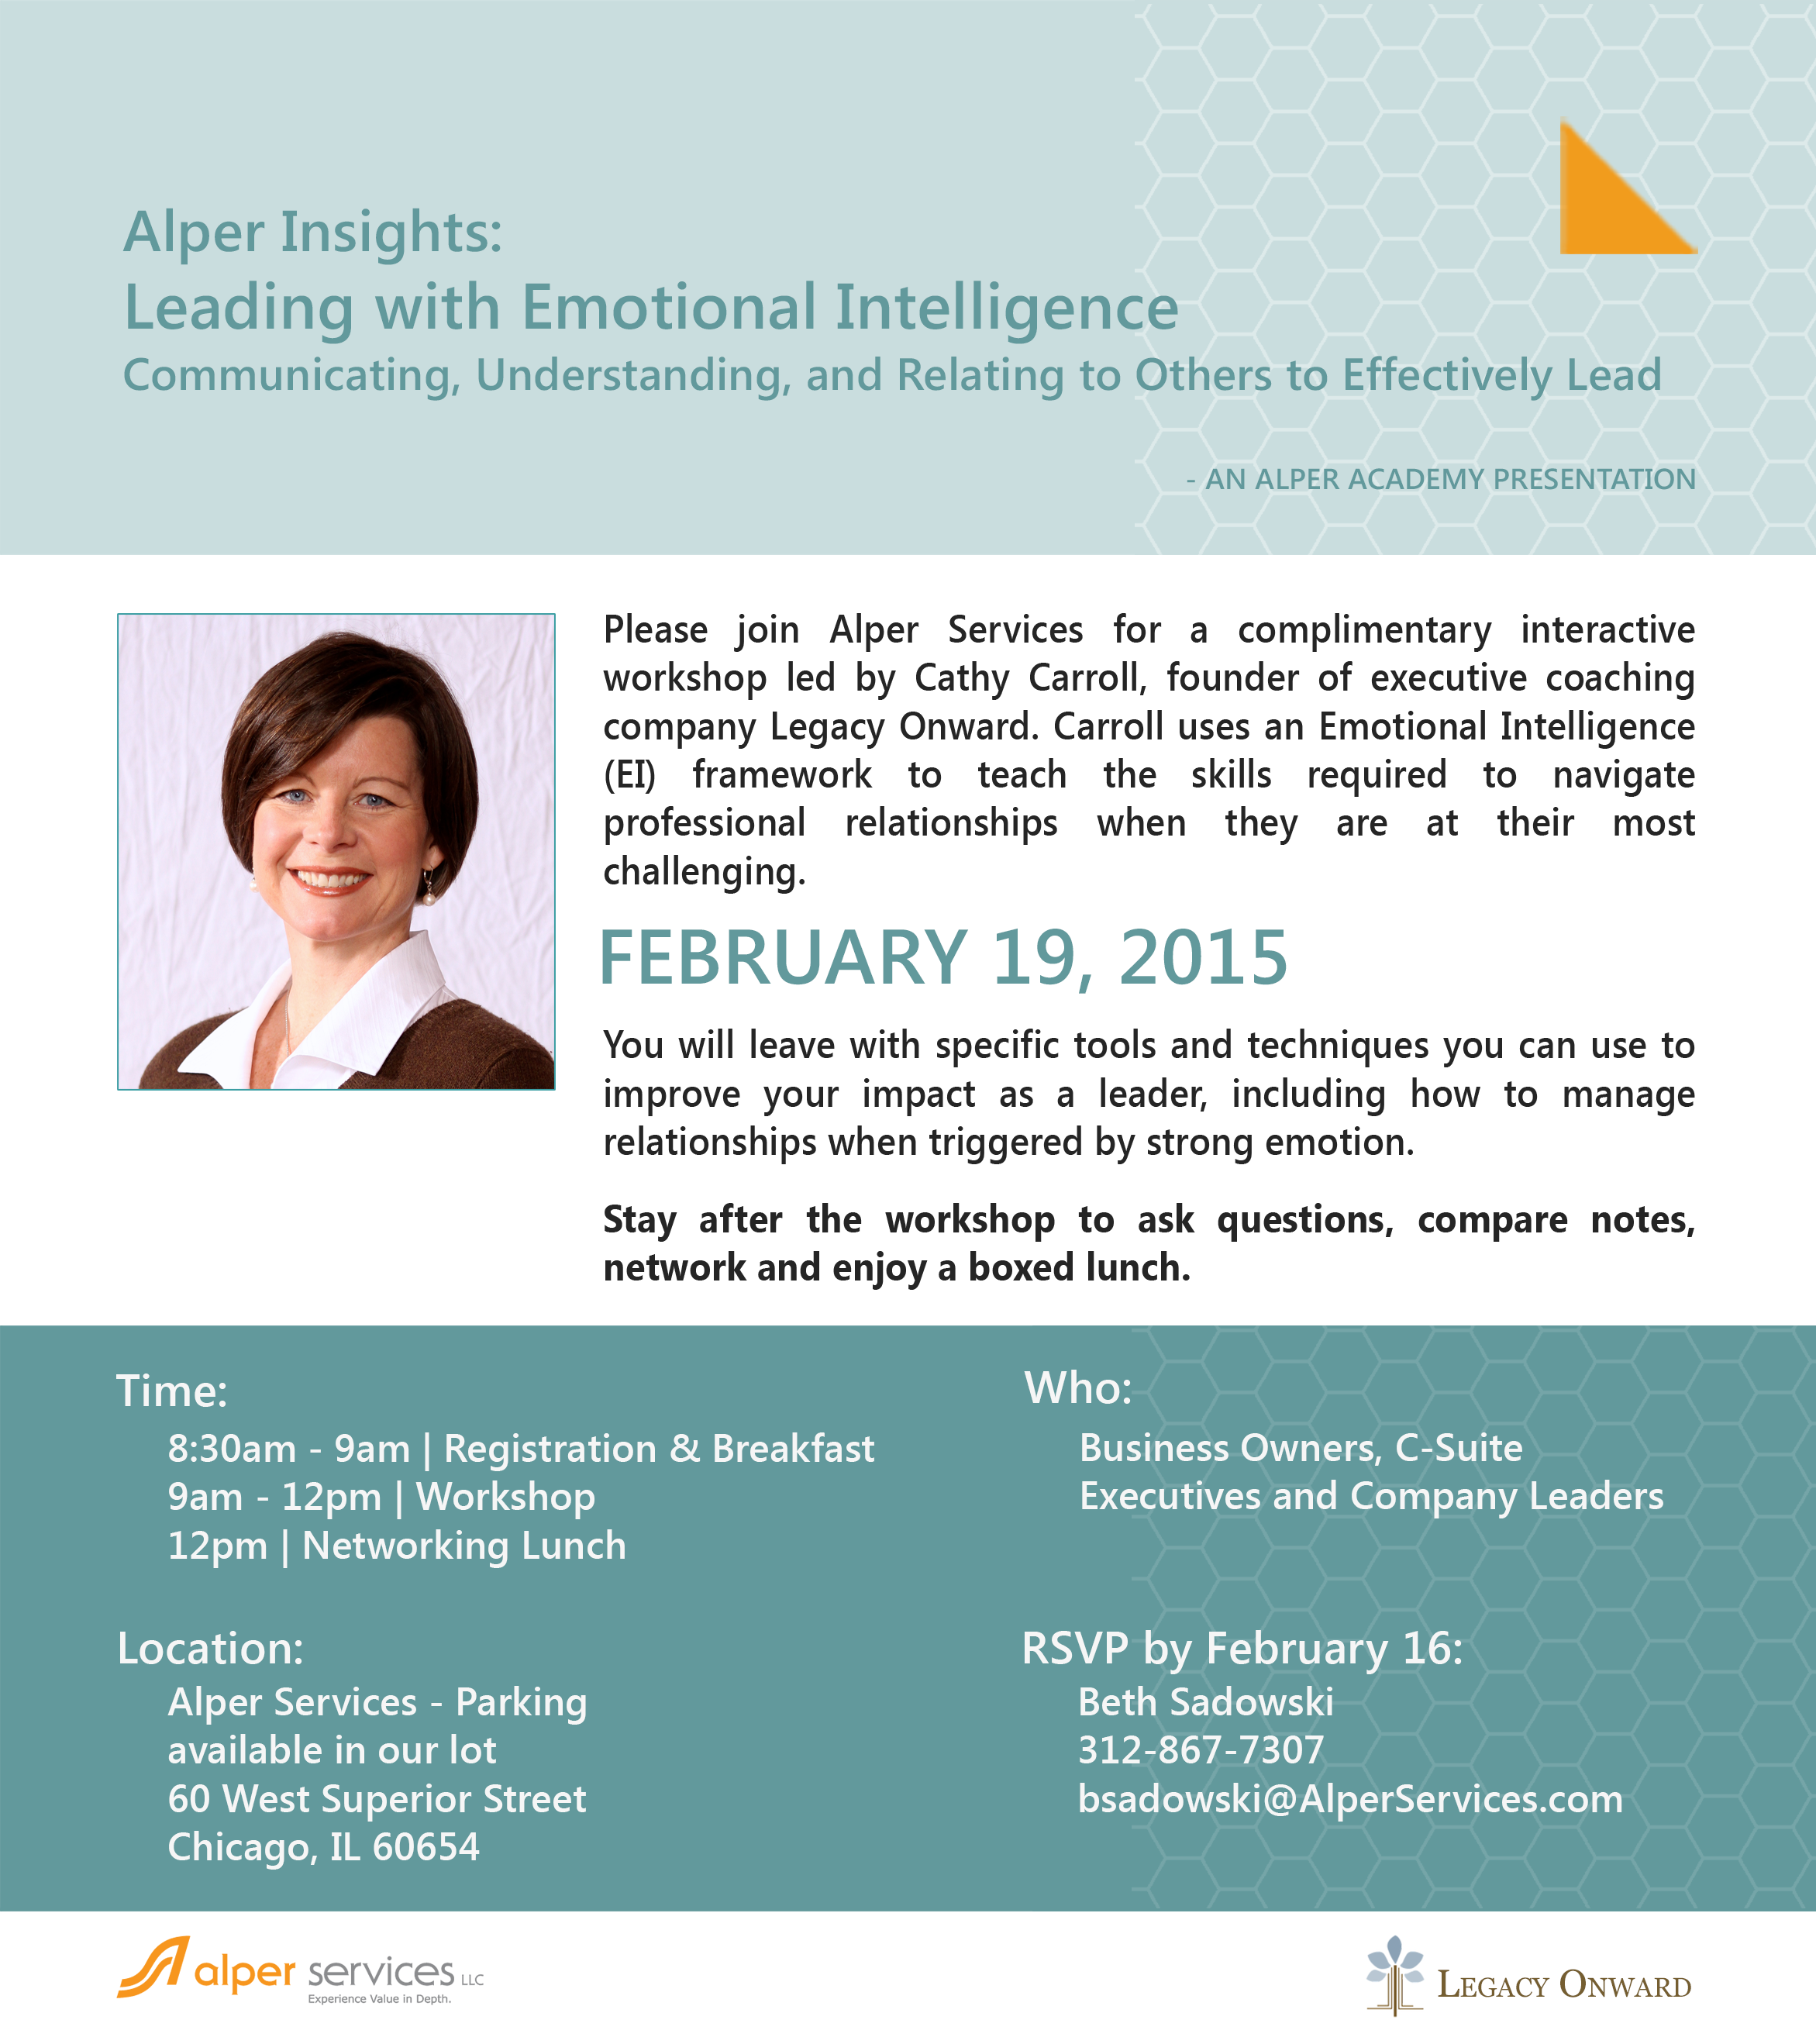 Alper Insights: Leading with Emotional Intelligence